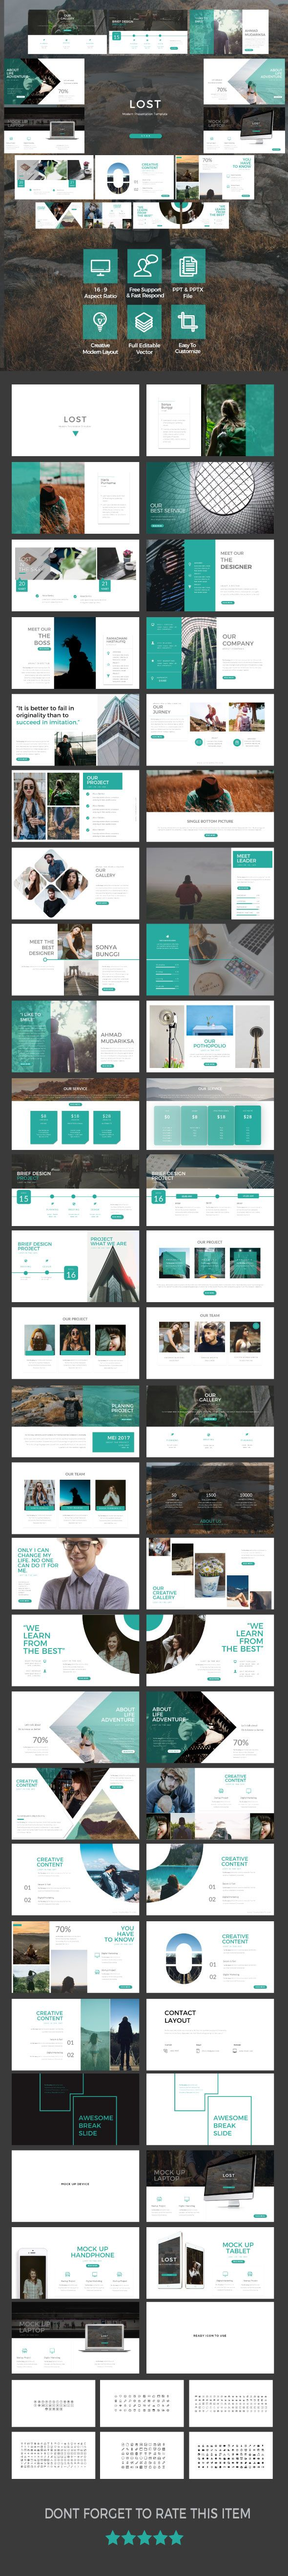 Lost - Multipurpose PowerPoint Presentation Template